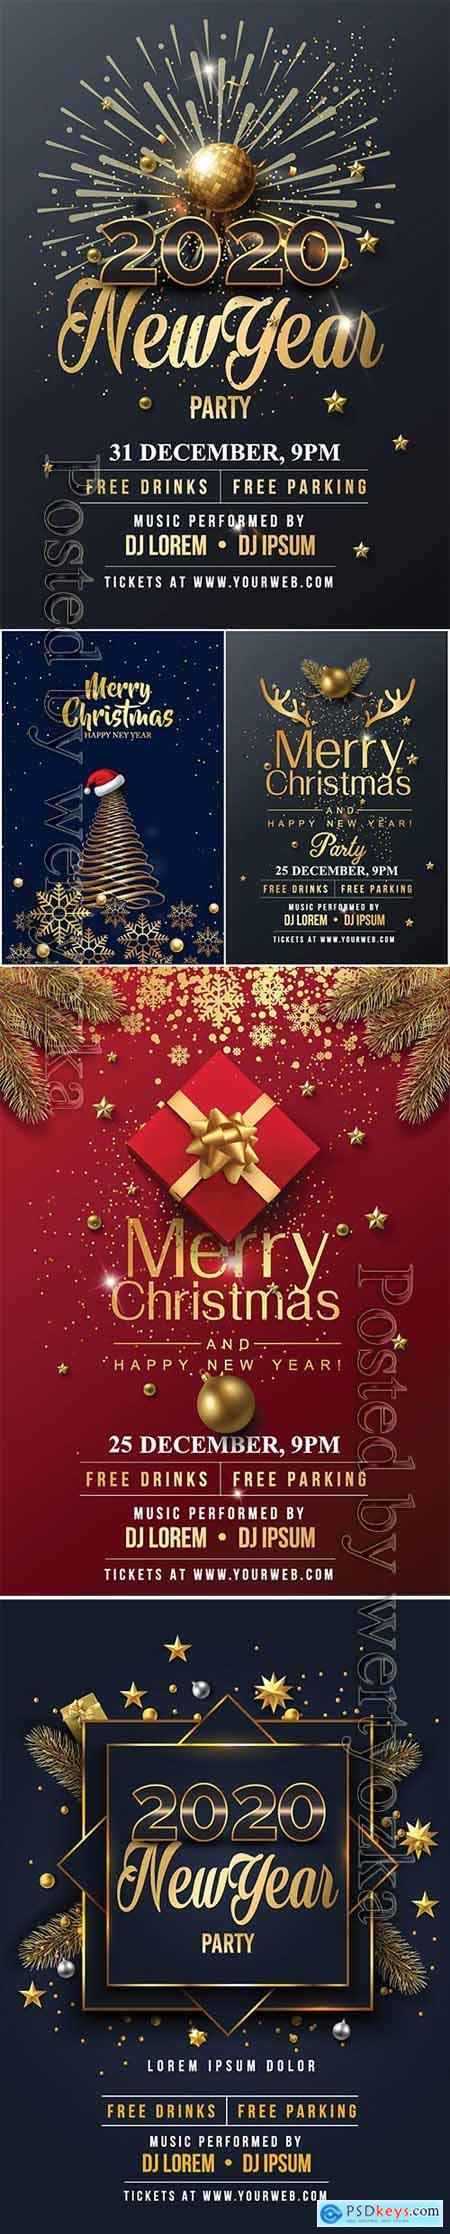 2020 Merry Chistmas and Happy New Year vector illustration v3